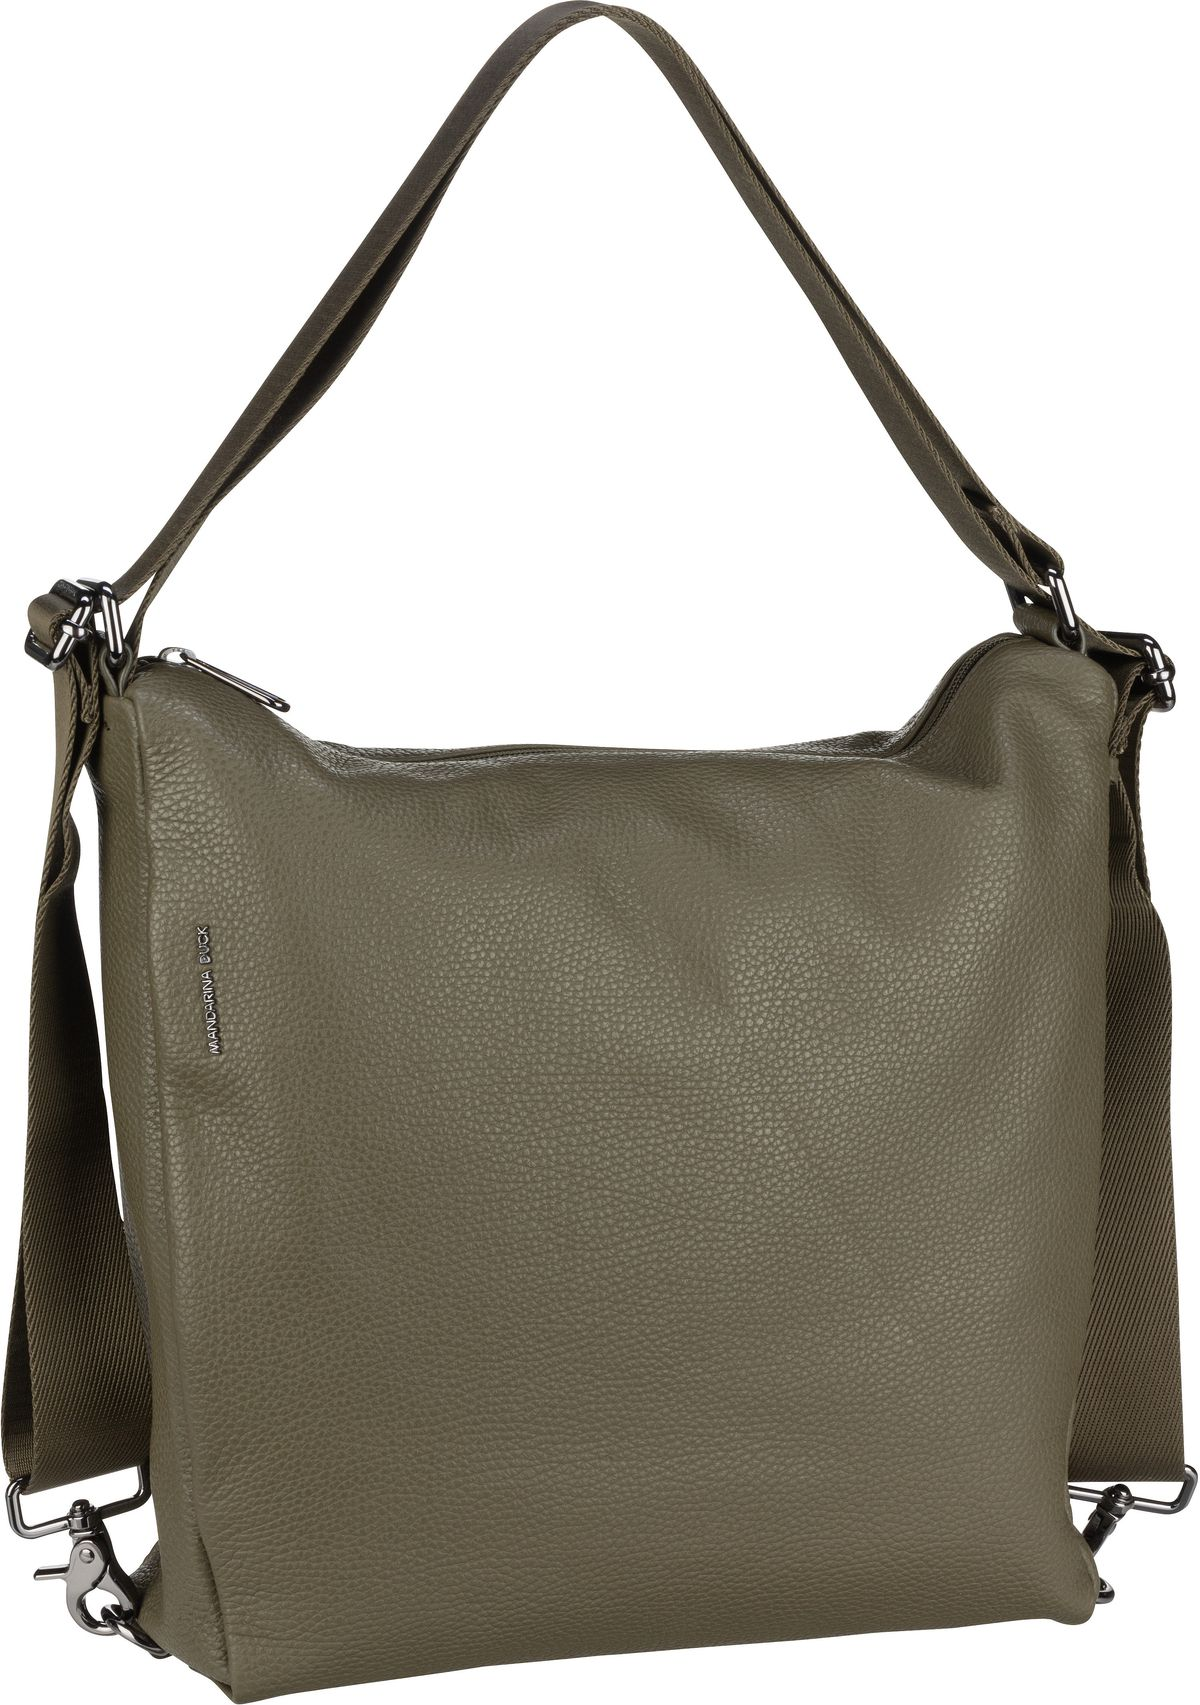 Handtasche Mellow Leather Hobo Backpack FZT72 Military Olive